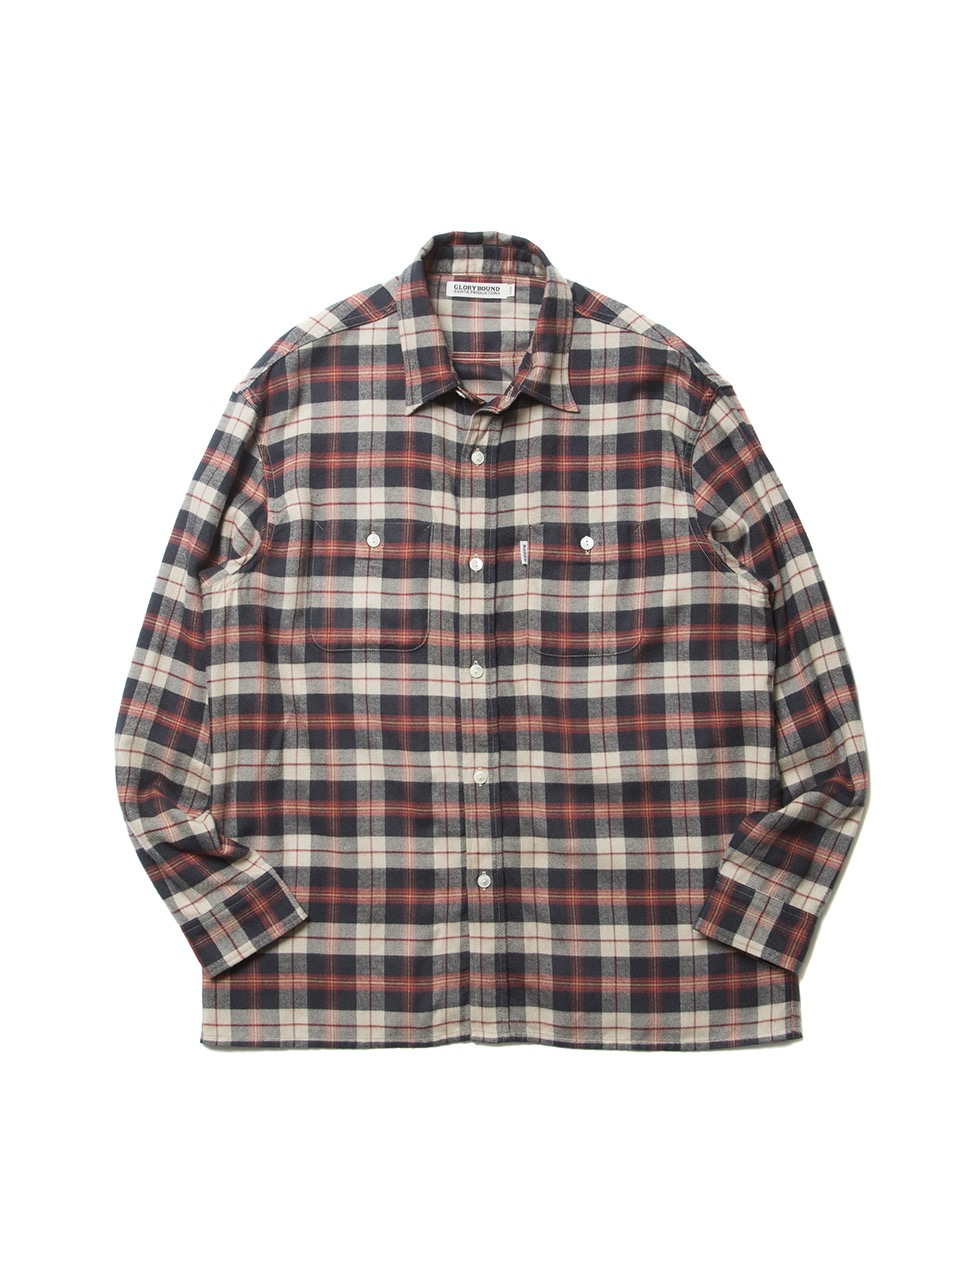 COOTIE Tartan Check Oversized Work Shirt